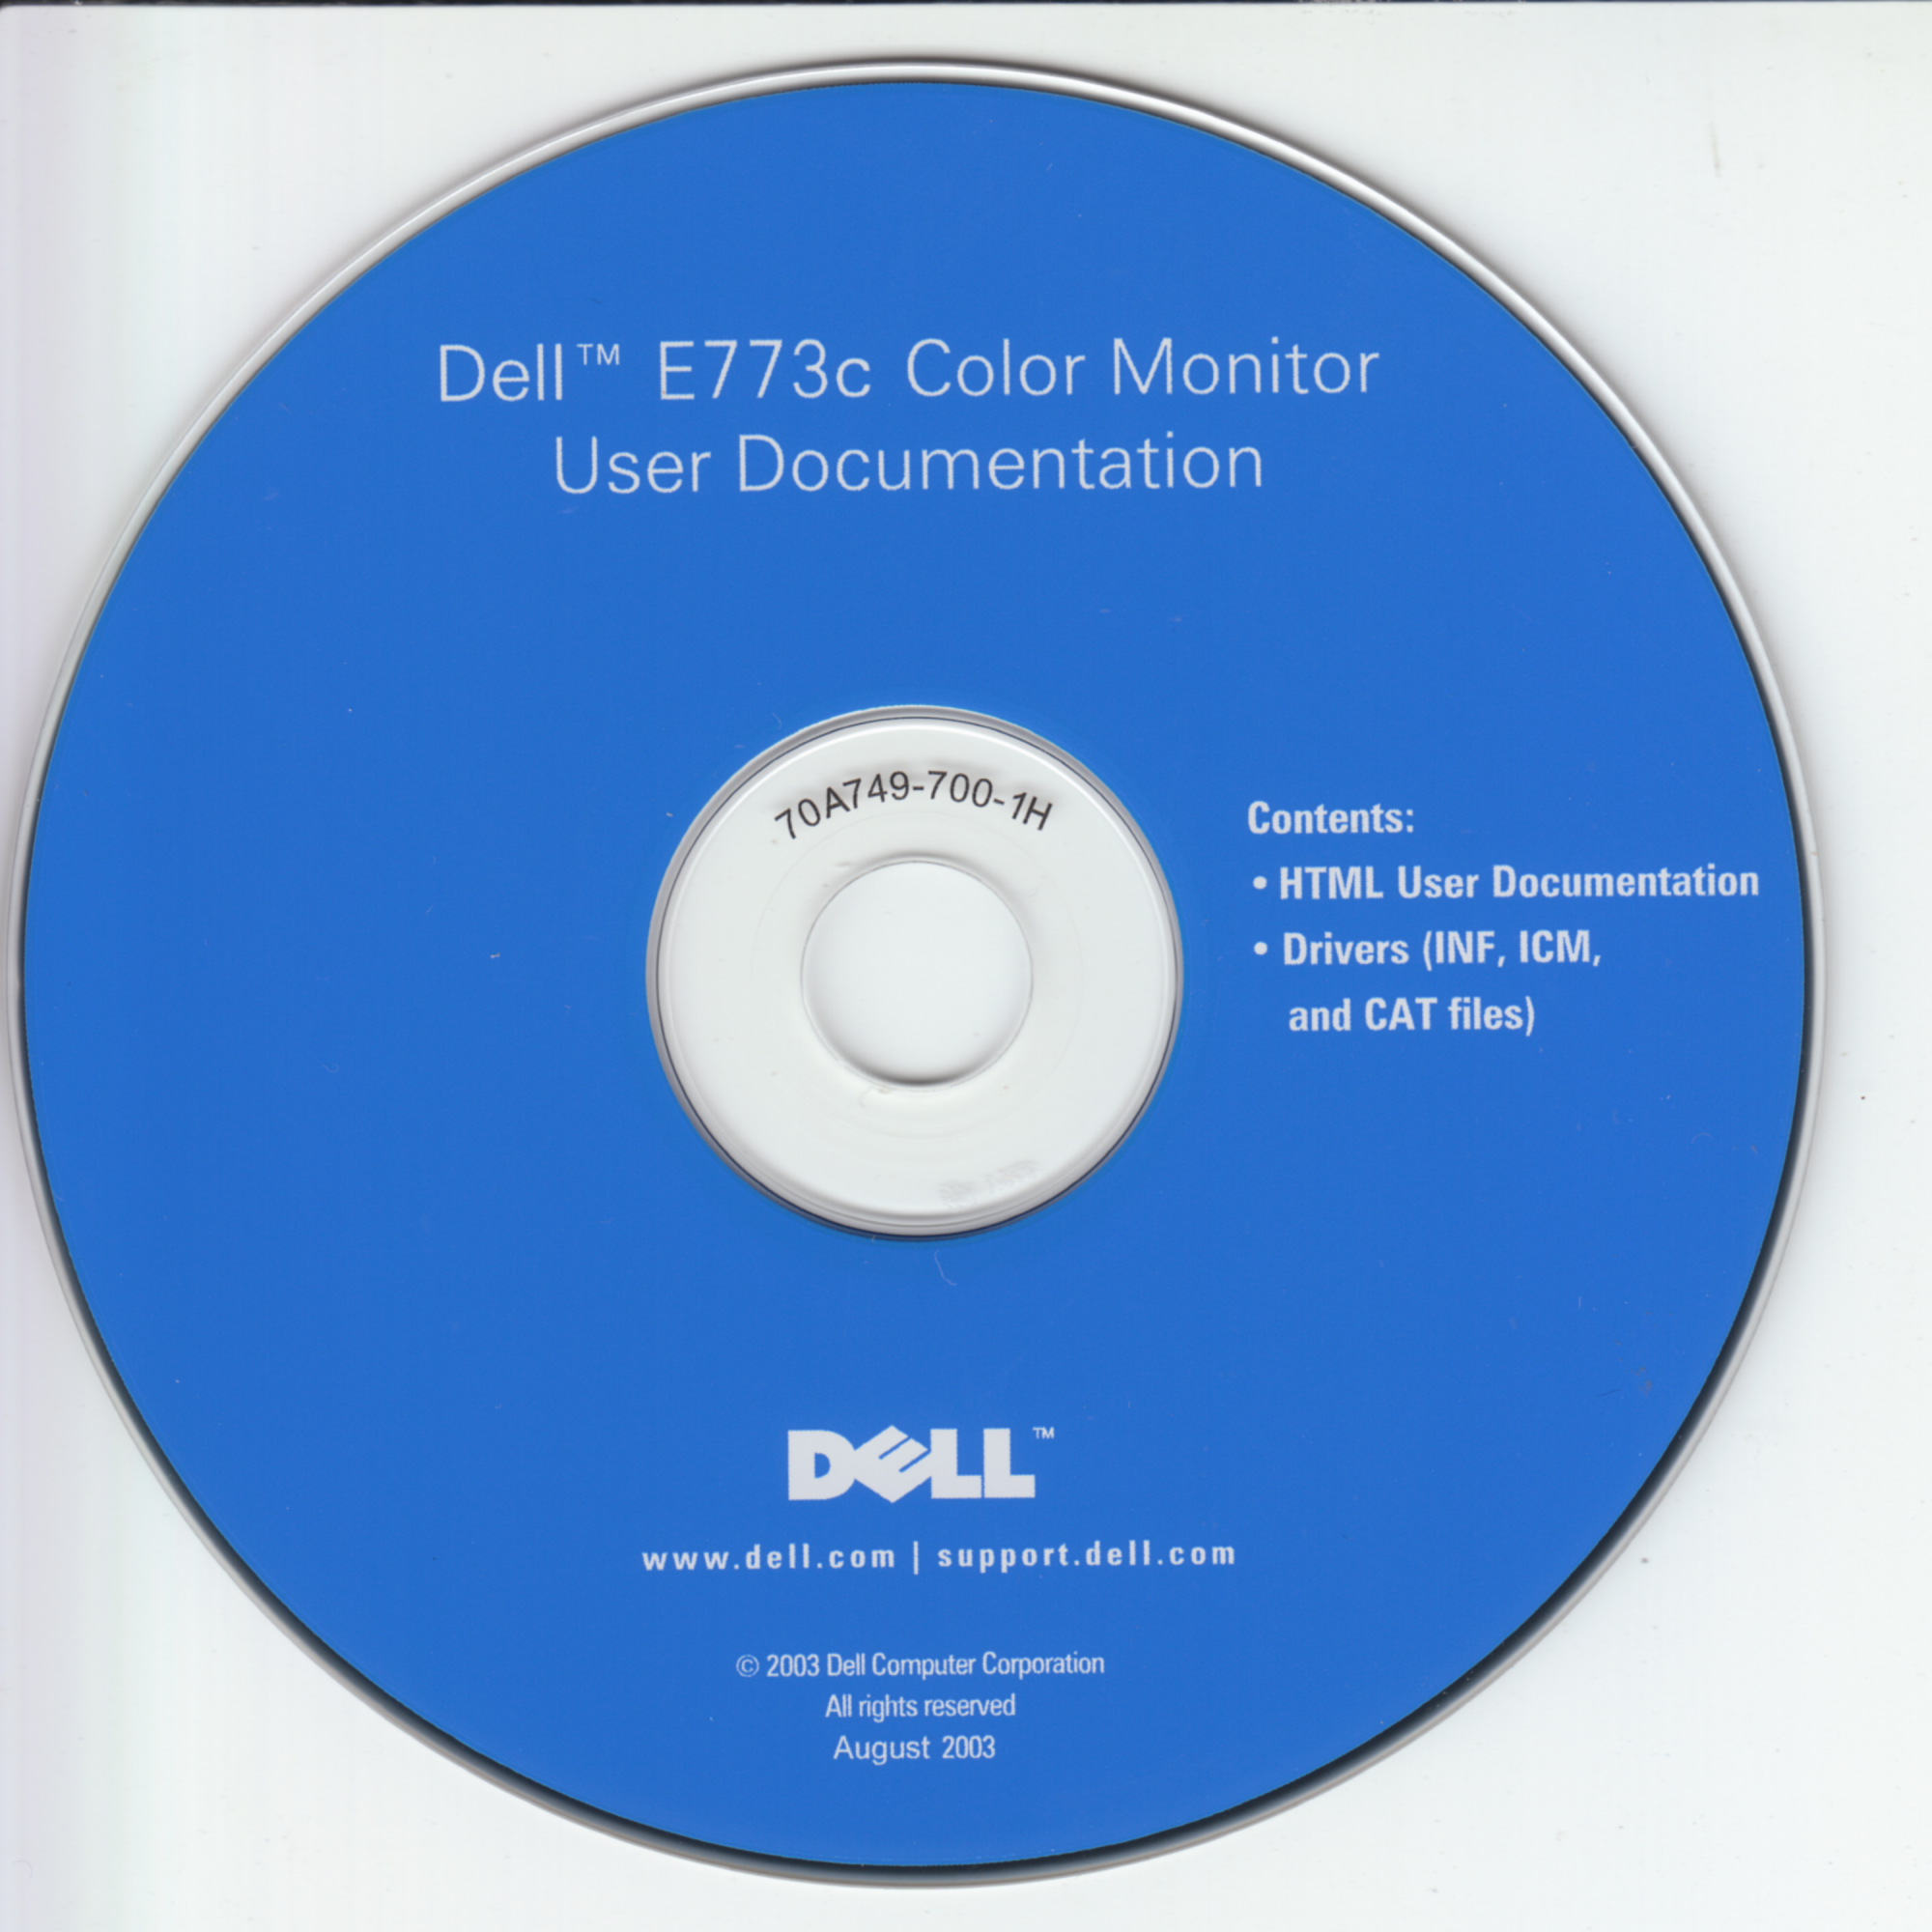 Dell E773c Color Monitor User Documentation (70A749-700-1H)